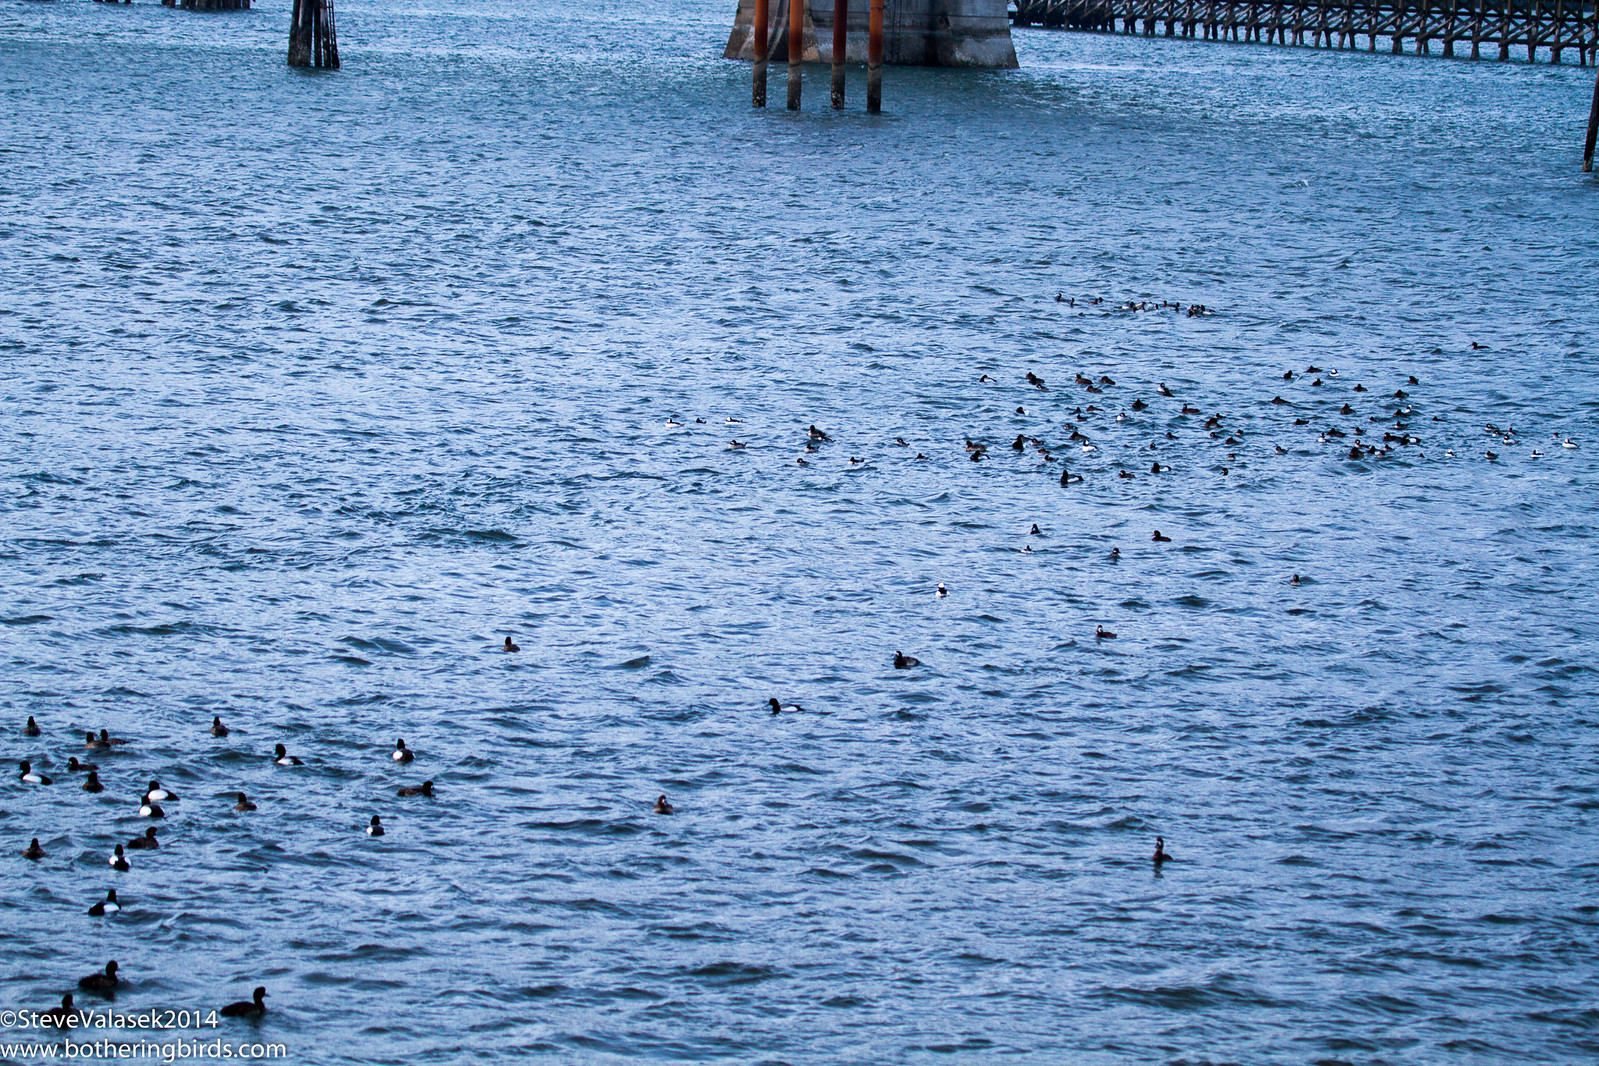 Ducks under Yaquina Bridge